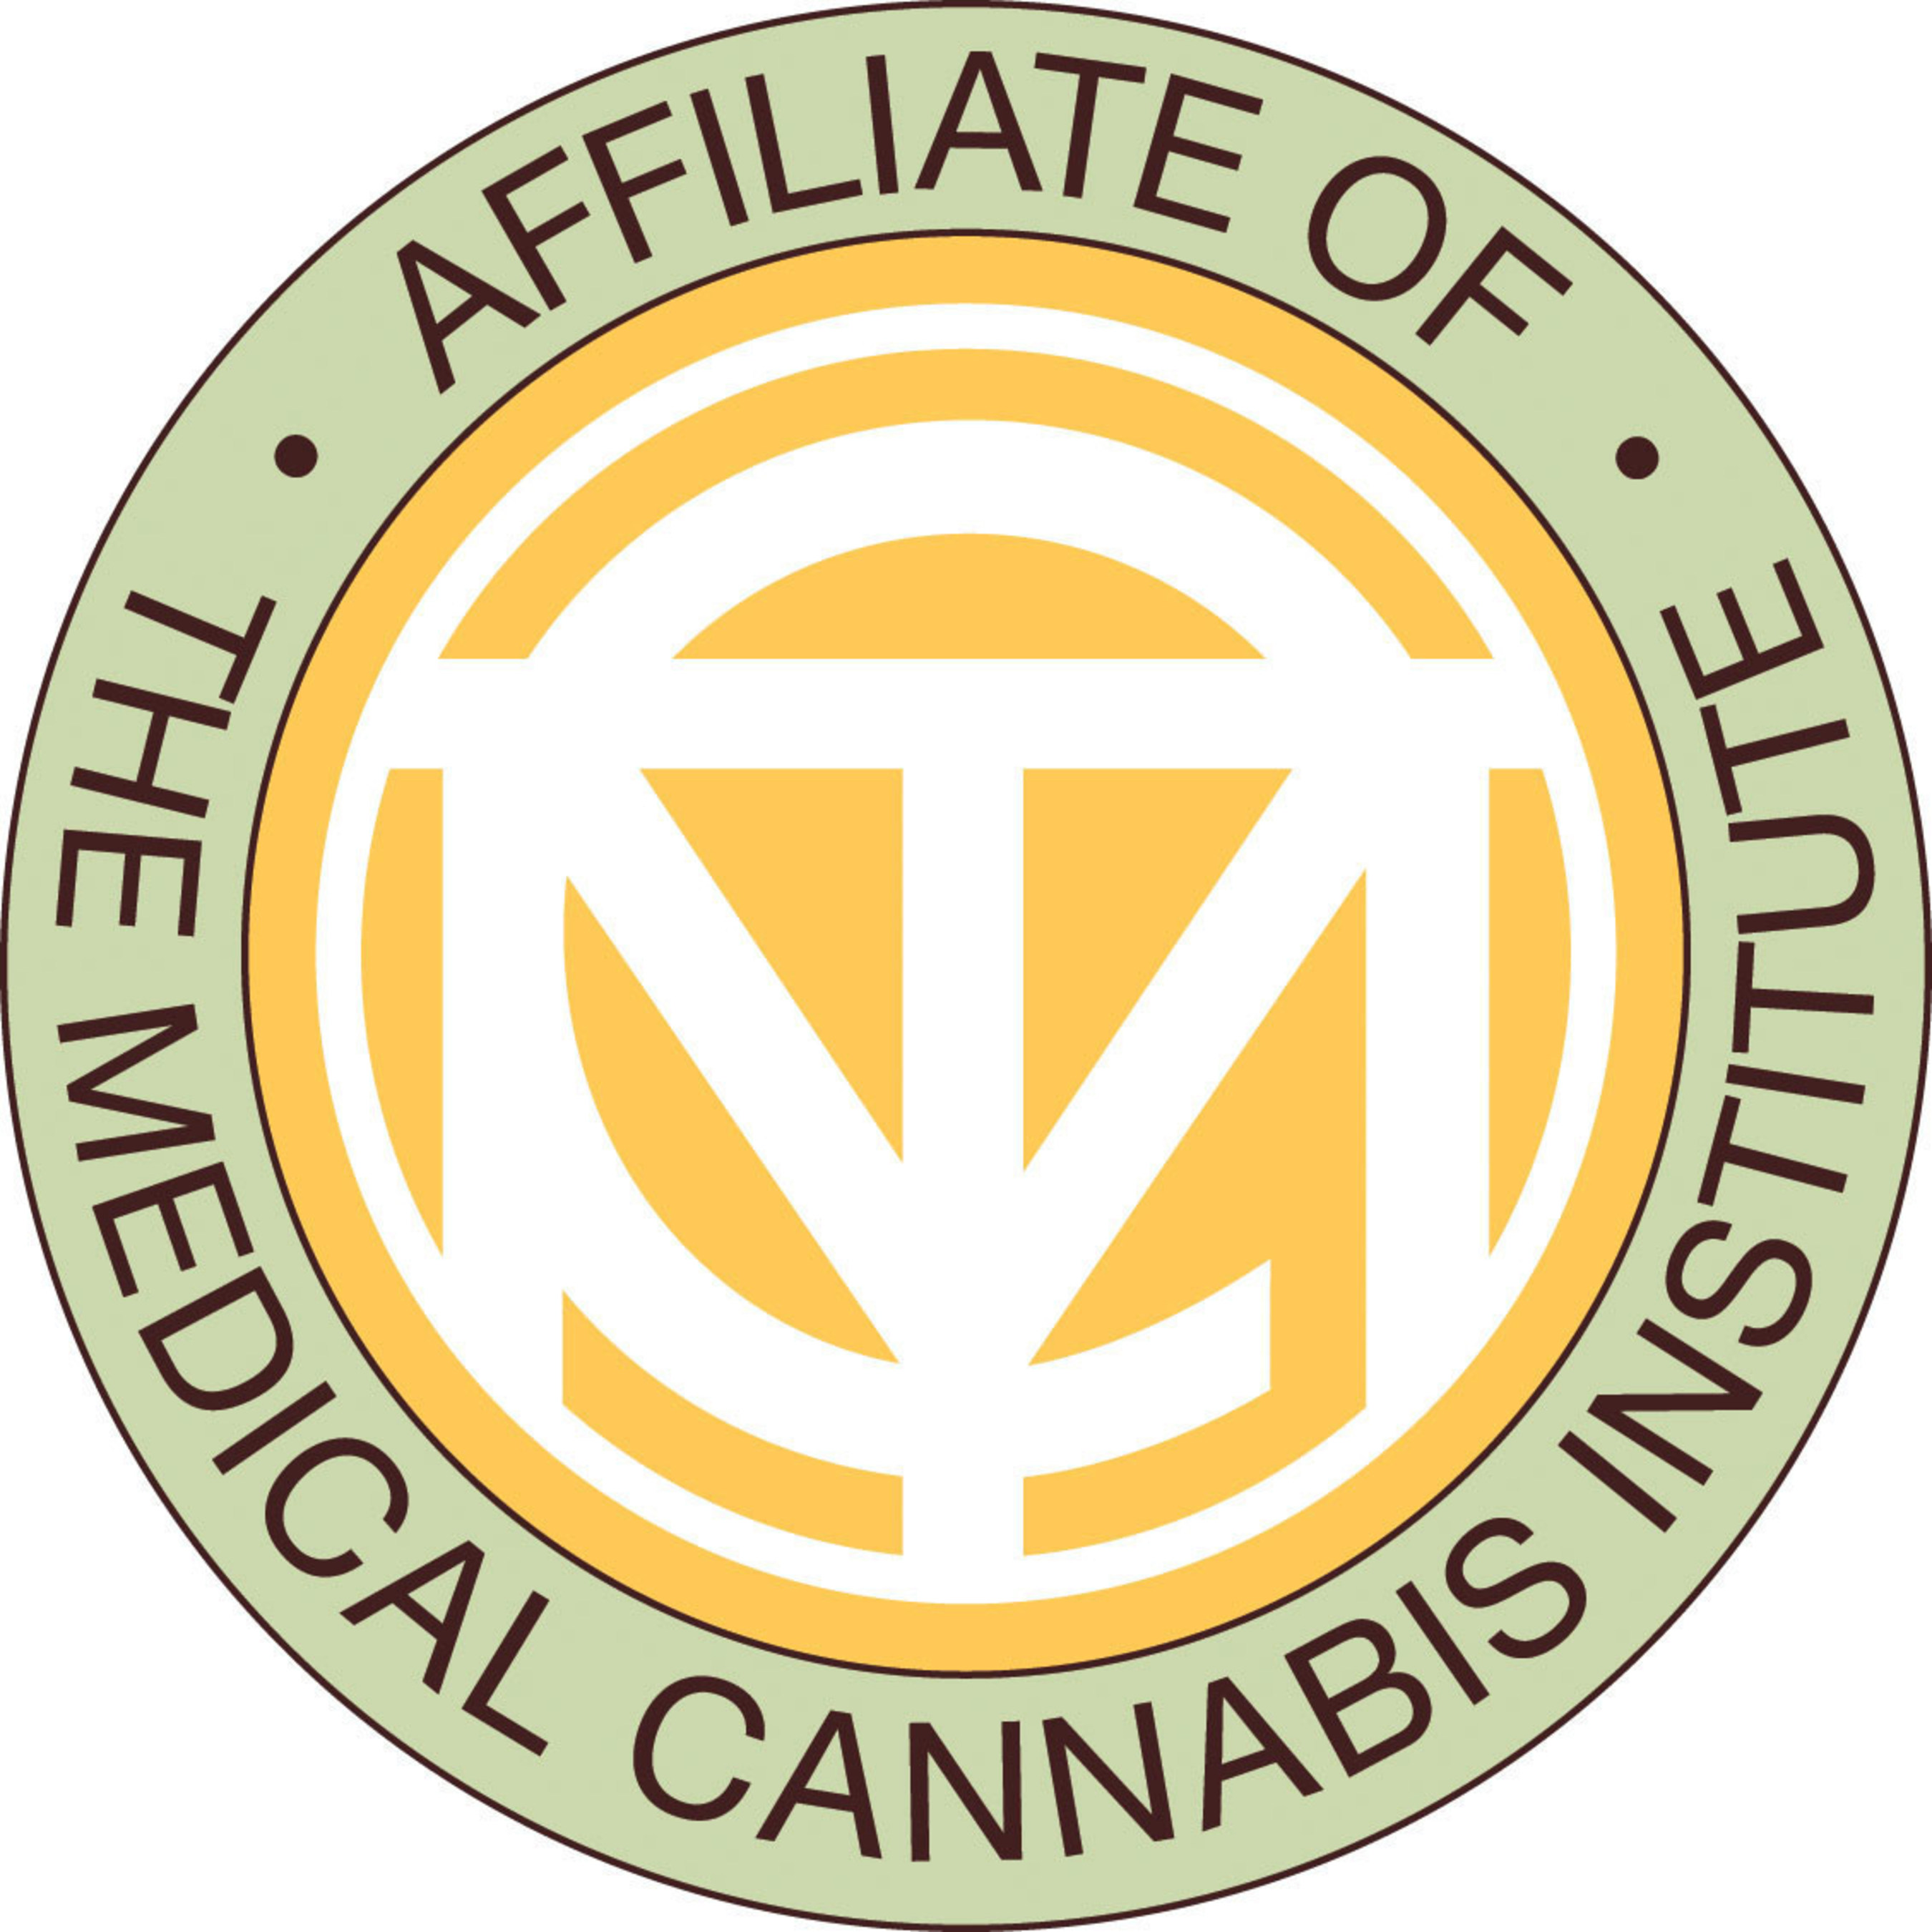 The Medical Cannabis Institute Expands Global Reach and Patient Audiences Through New Affiliate Program